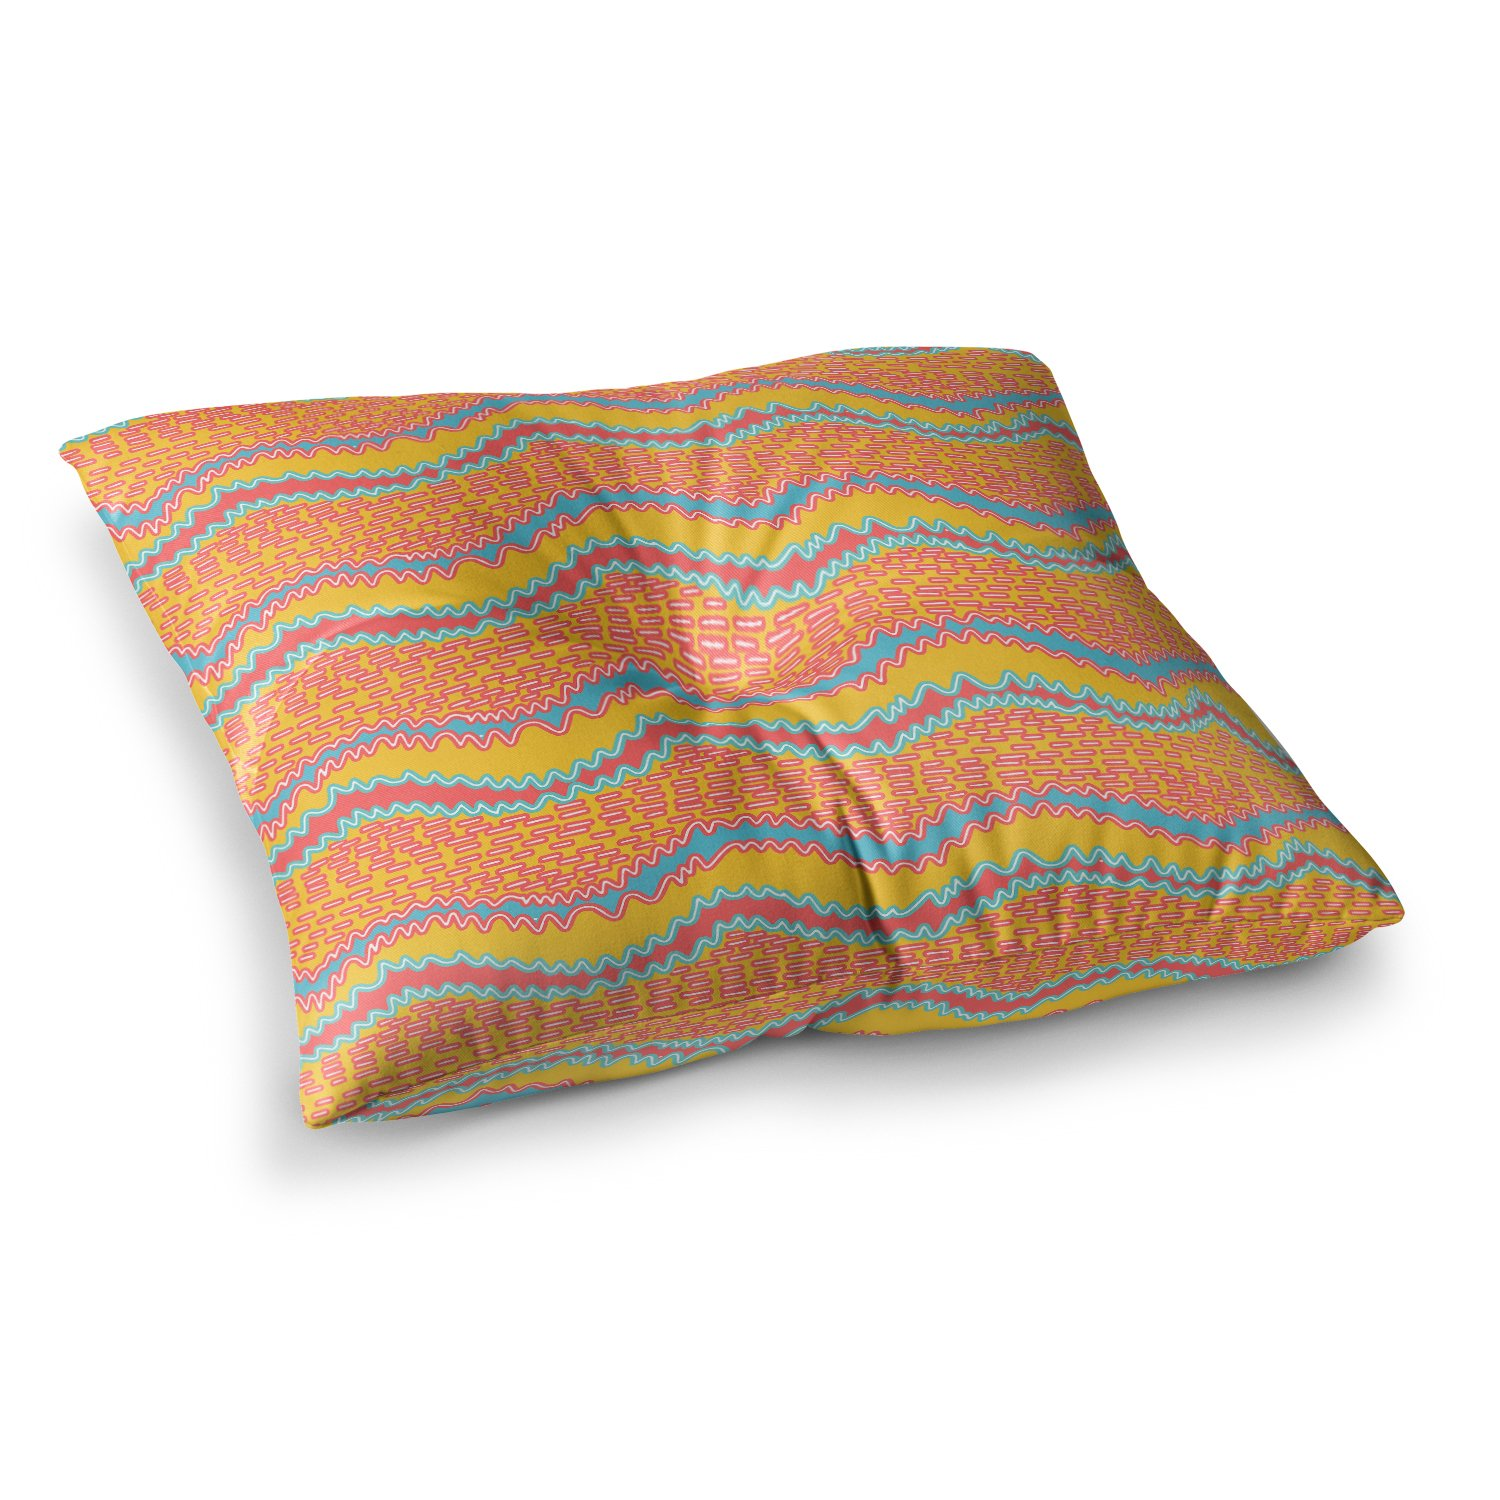 26 x 26 Square Floor Pillow Kess InHouse Nandita Singh Pink Waves Orange Yellow